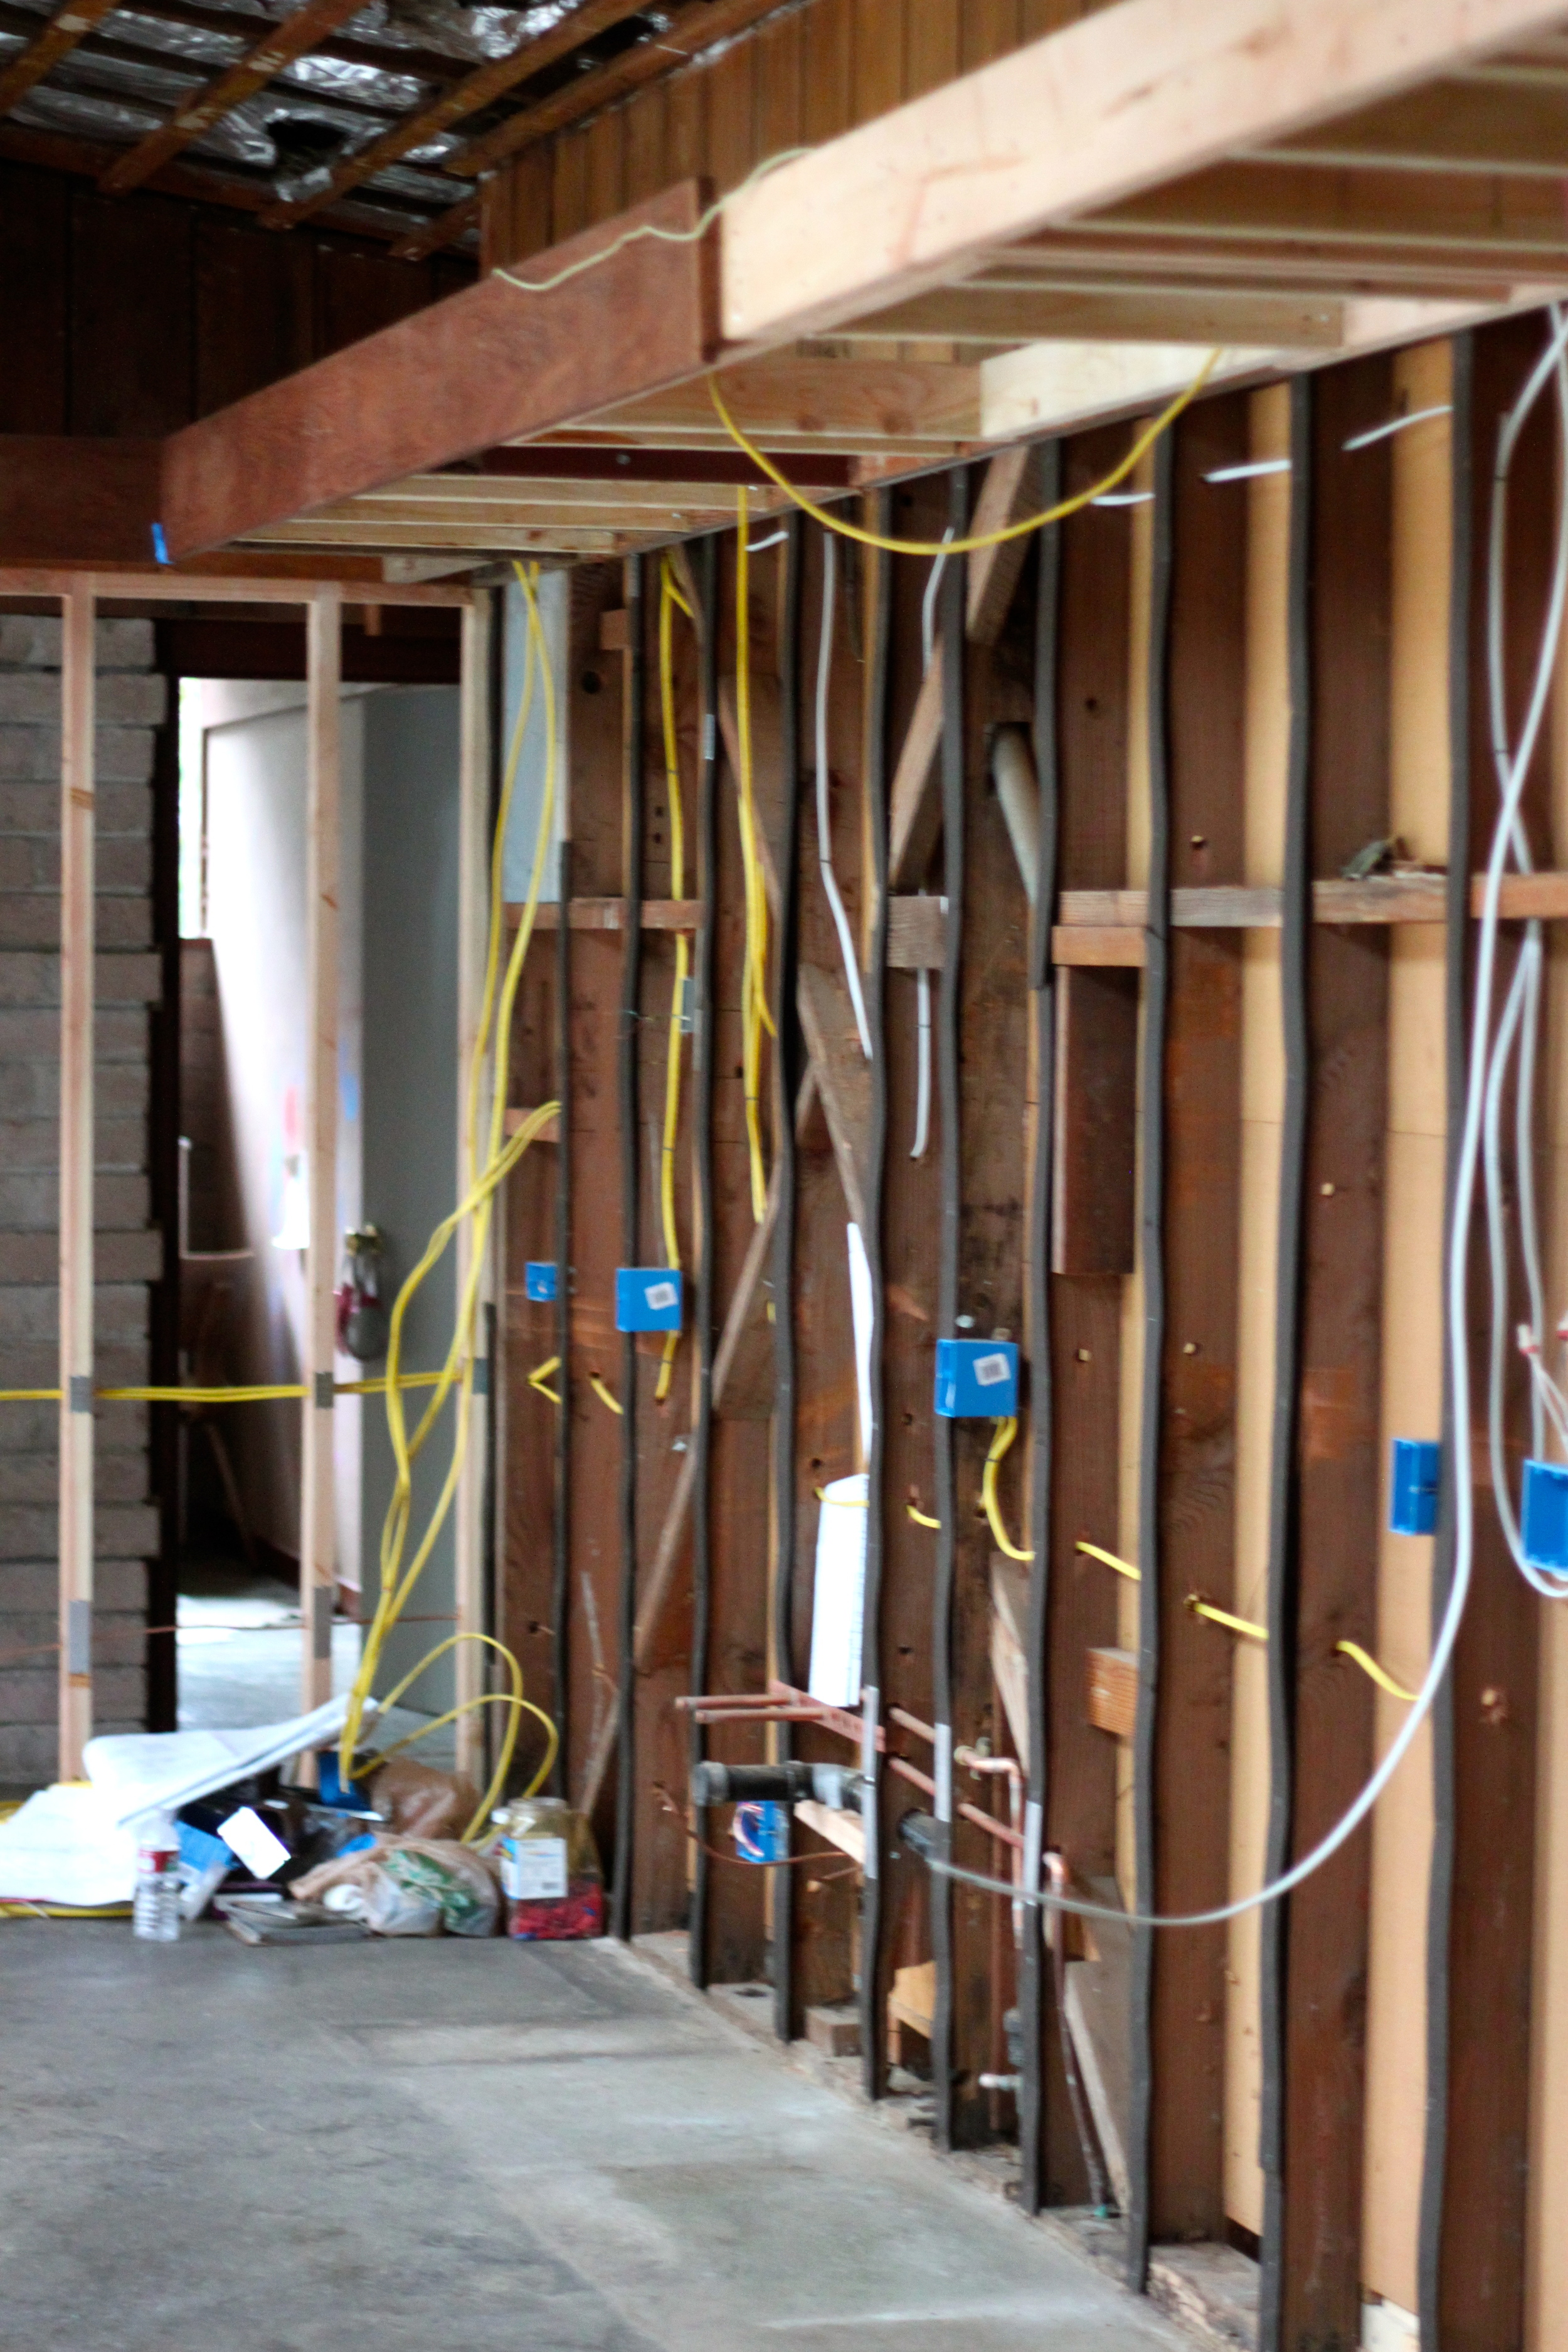 Kitchen Renovation Part 2 Cocoon Home New Electrical Wiring Now That The Walls And Ceiling Of Our Have Been Exposed Boxes Are Being Installed Valances So Typical